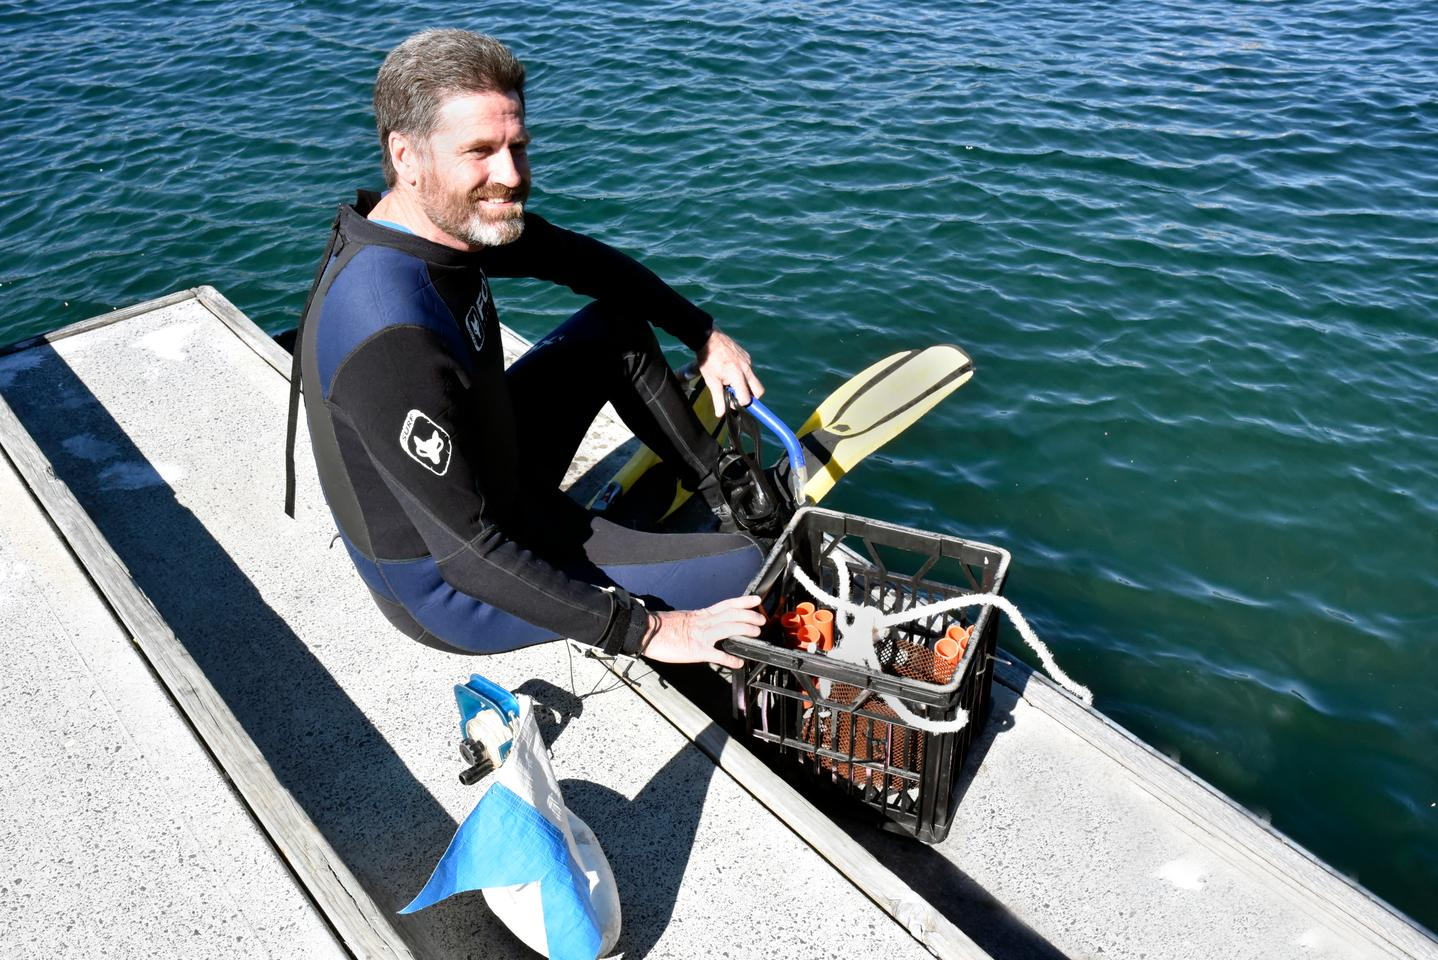 David Booth, a professor of Marine Ecology at the University of Technology Sydney, prepares to enter the water at Sydney harbor